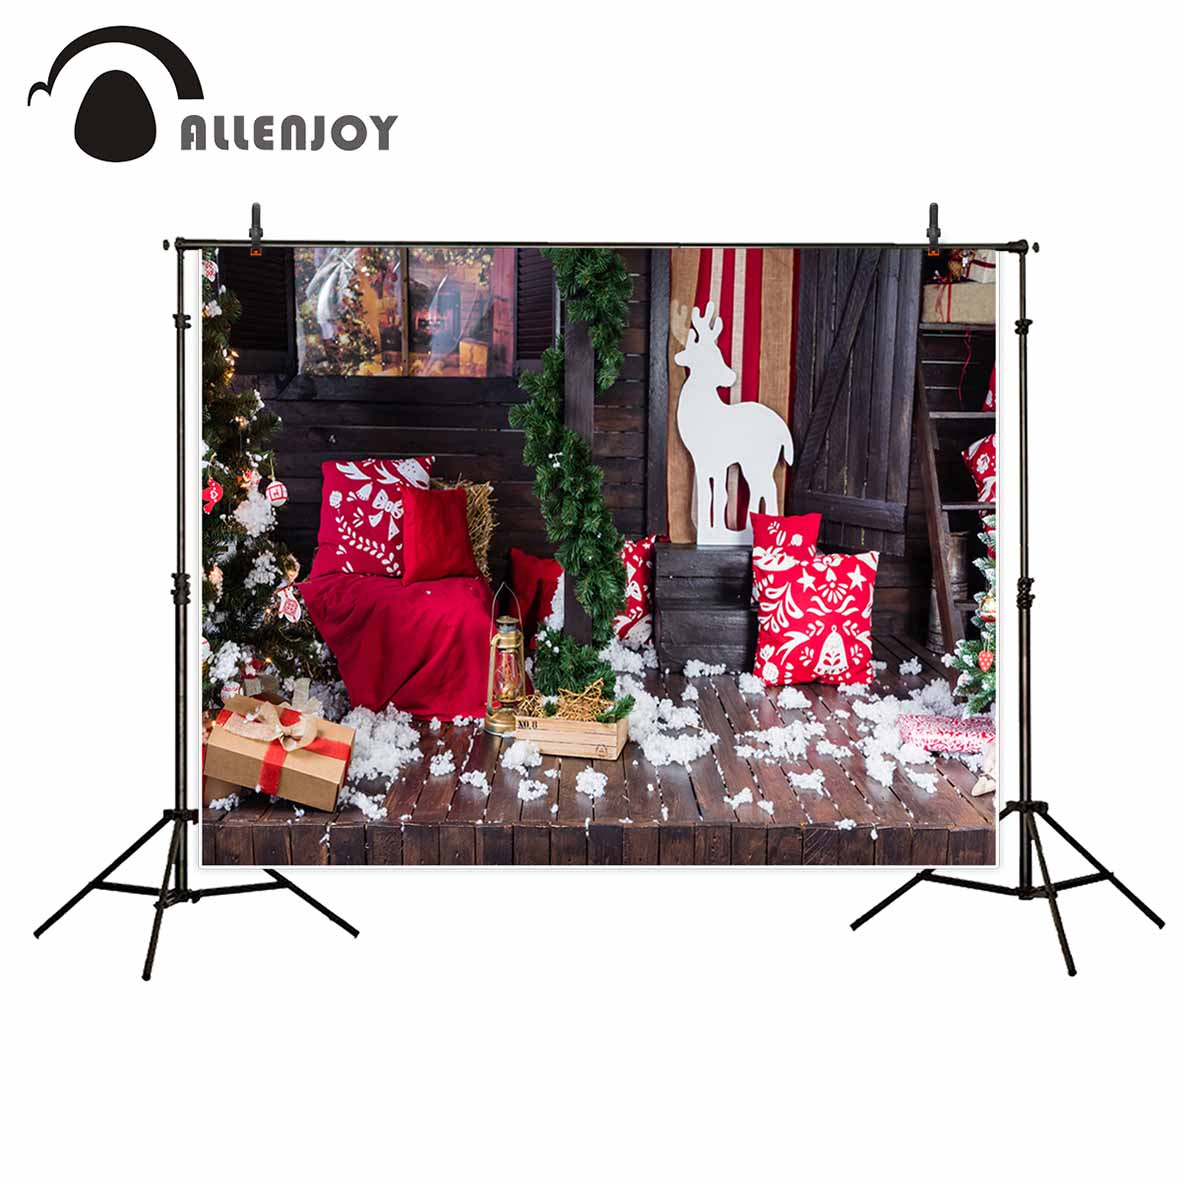 Allenjoy Christmas background indoor toy elk tree gifts window photography backdrops photo backdrop photography backdrops allenjoy christmas backdrop tree gift chandelier fireplace cute professional background backdrop for photo studio